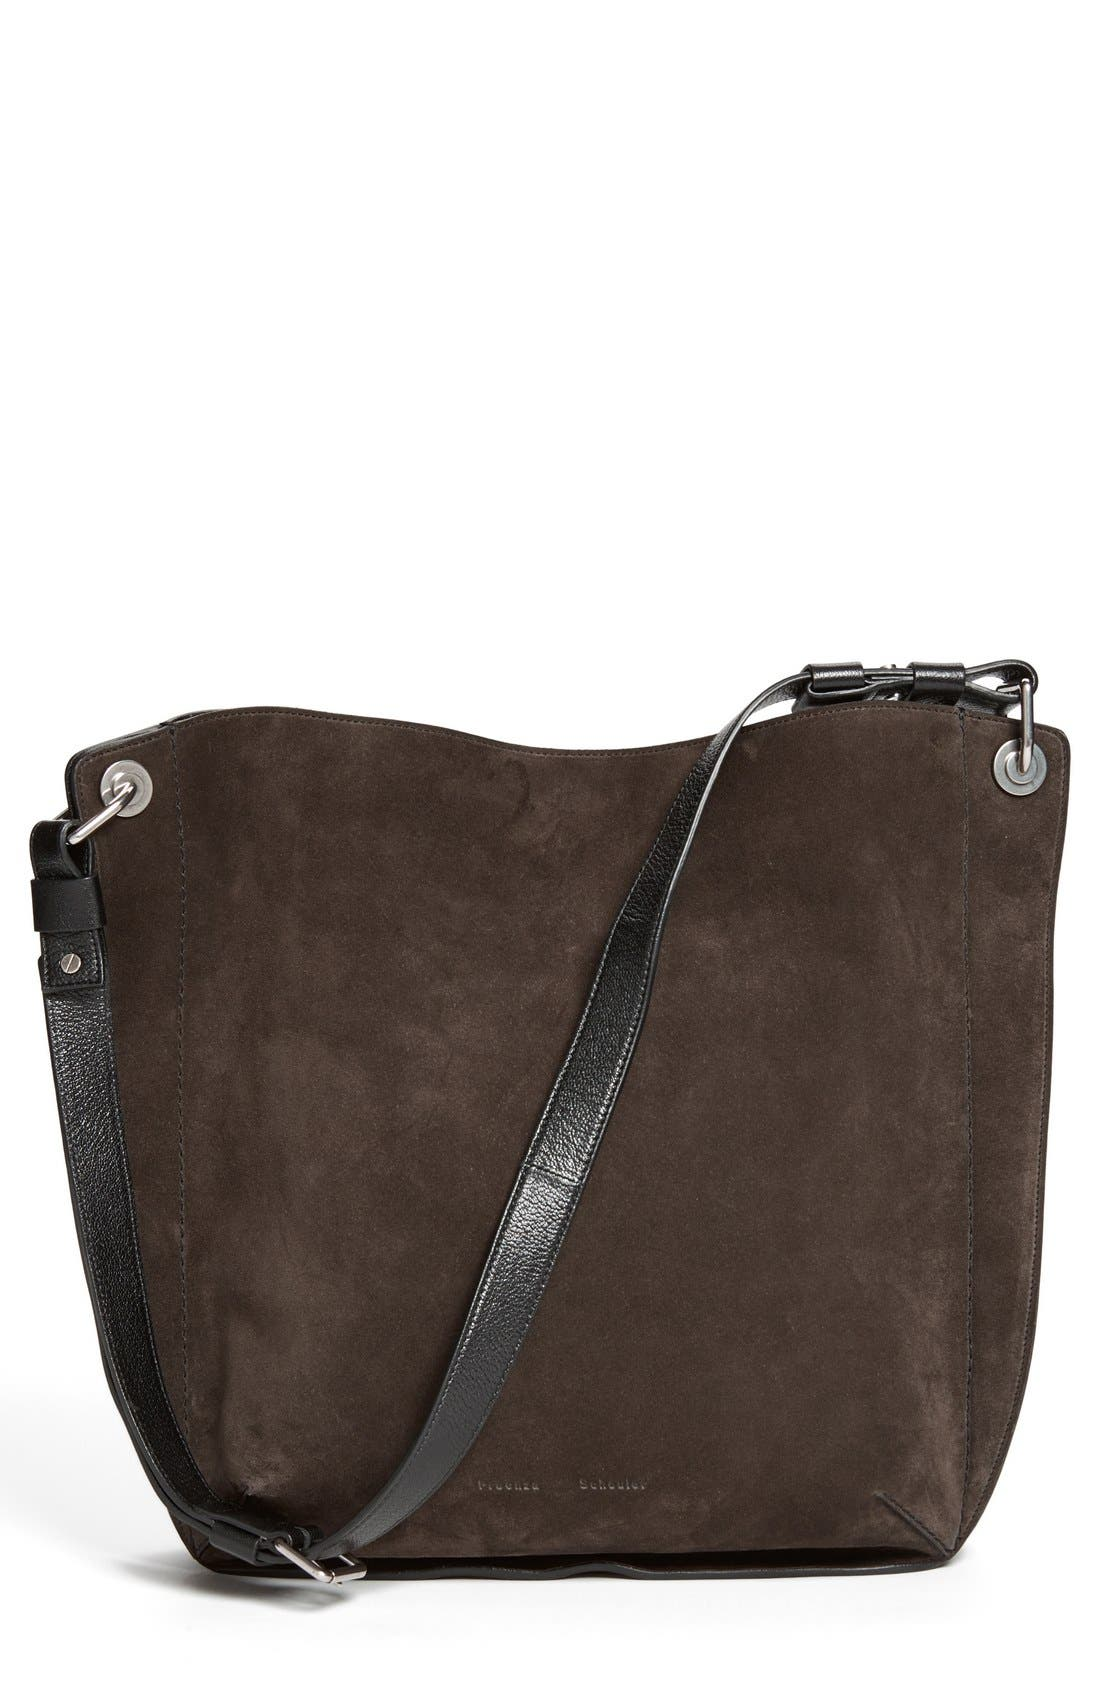 Main Image - Proenza Schouler 'Large Prospect' Suede Tote